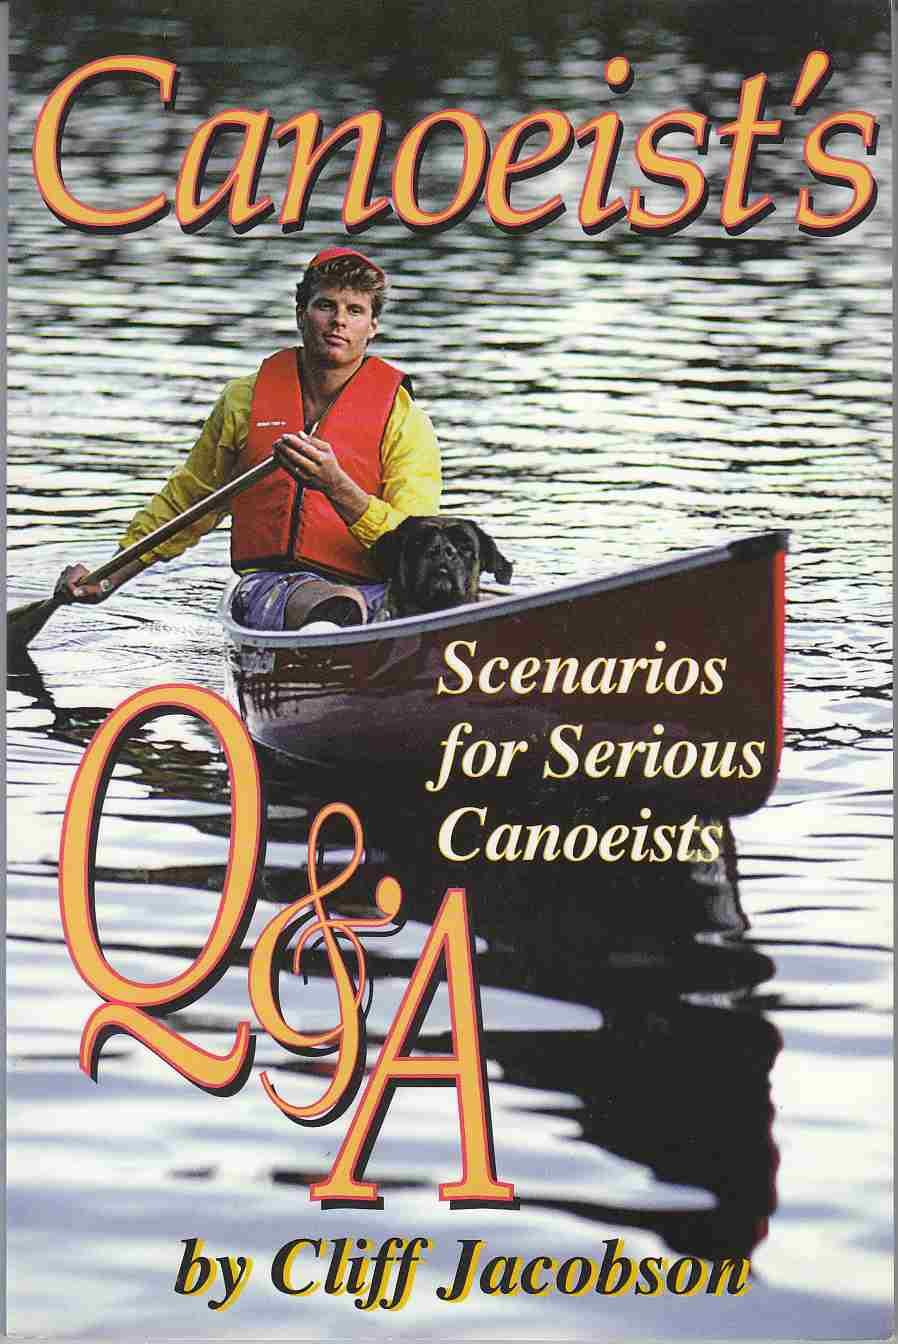 Image for Canoeist's Q & A Scenarios for Serious Canoeists